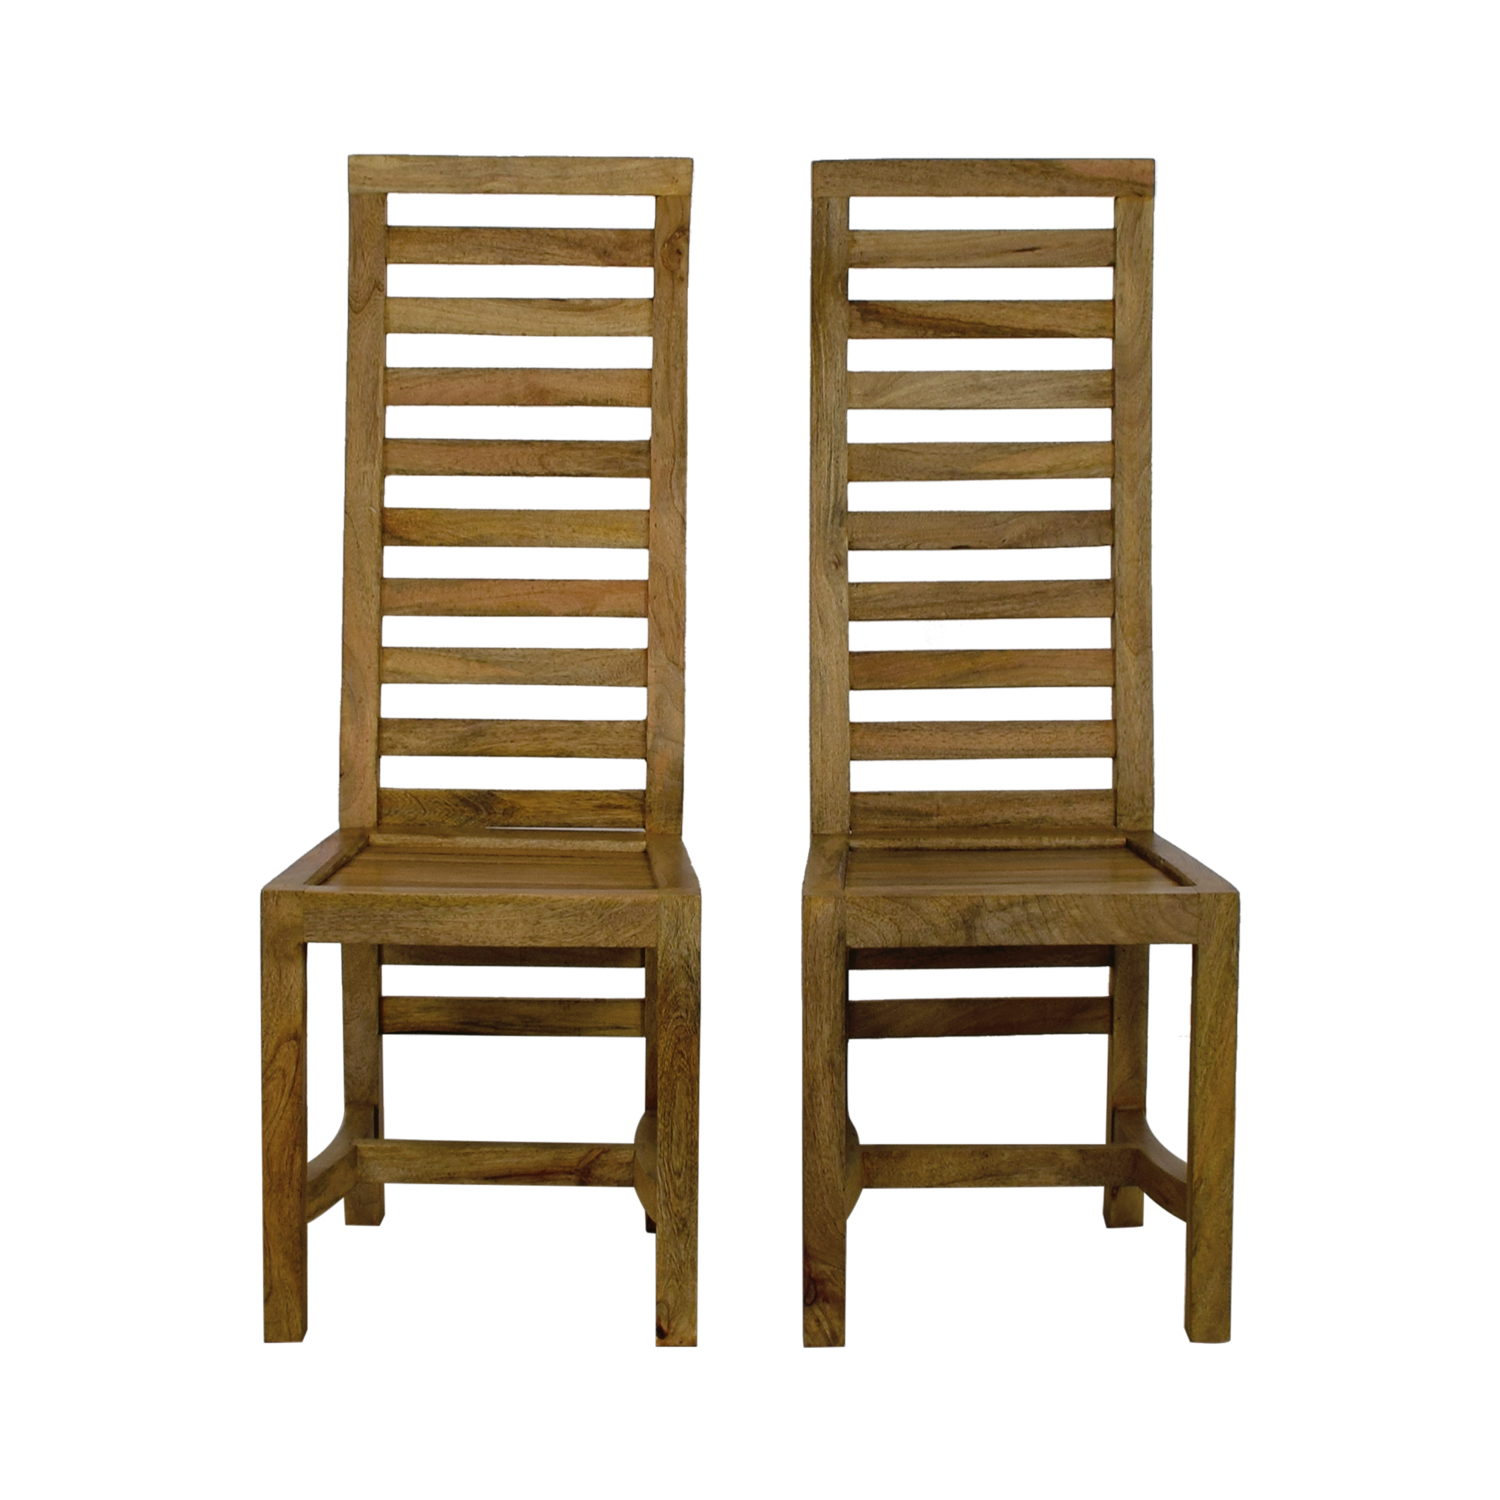 74 Off Nadeau Nadeau Rustic High Back Wooden Chairs Chairs